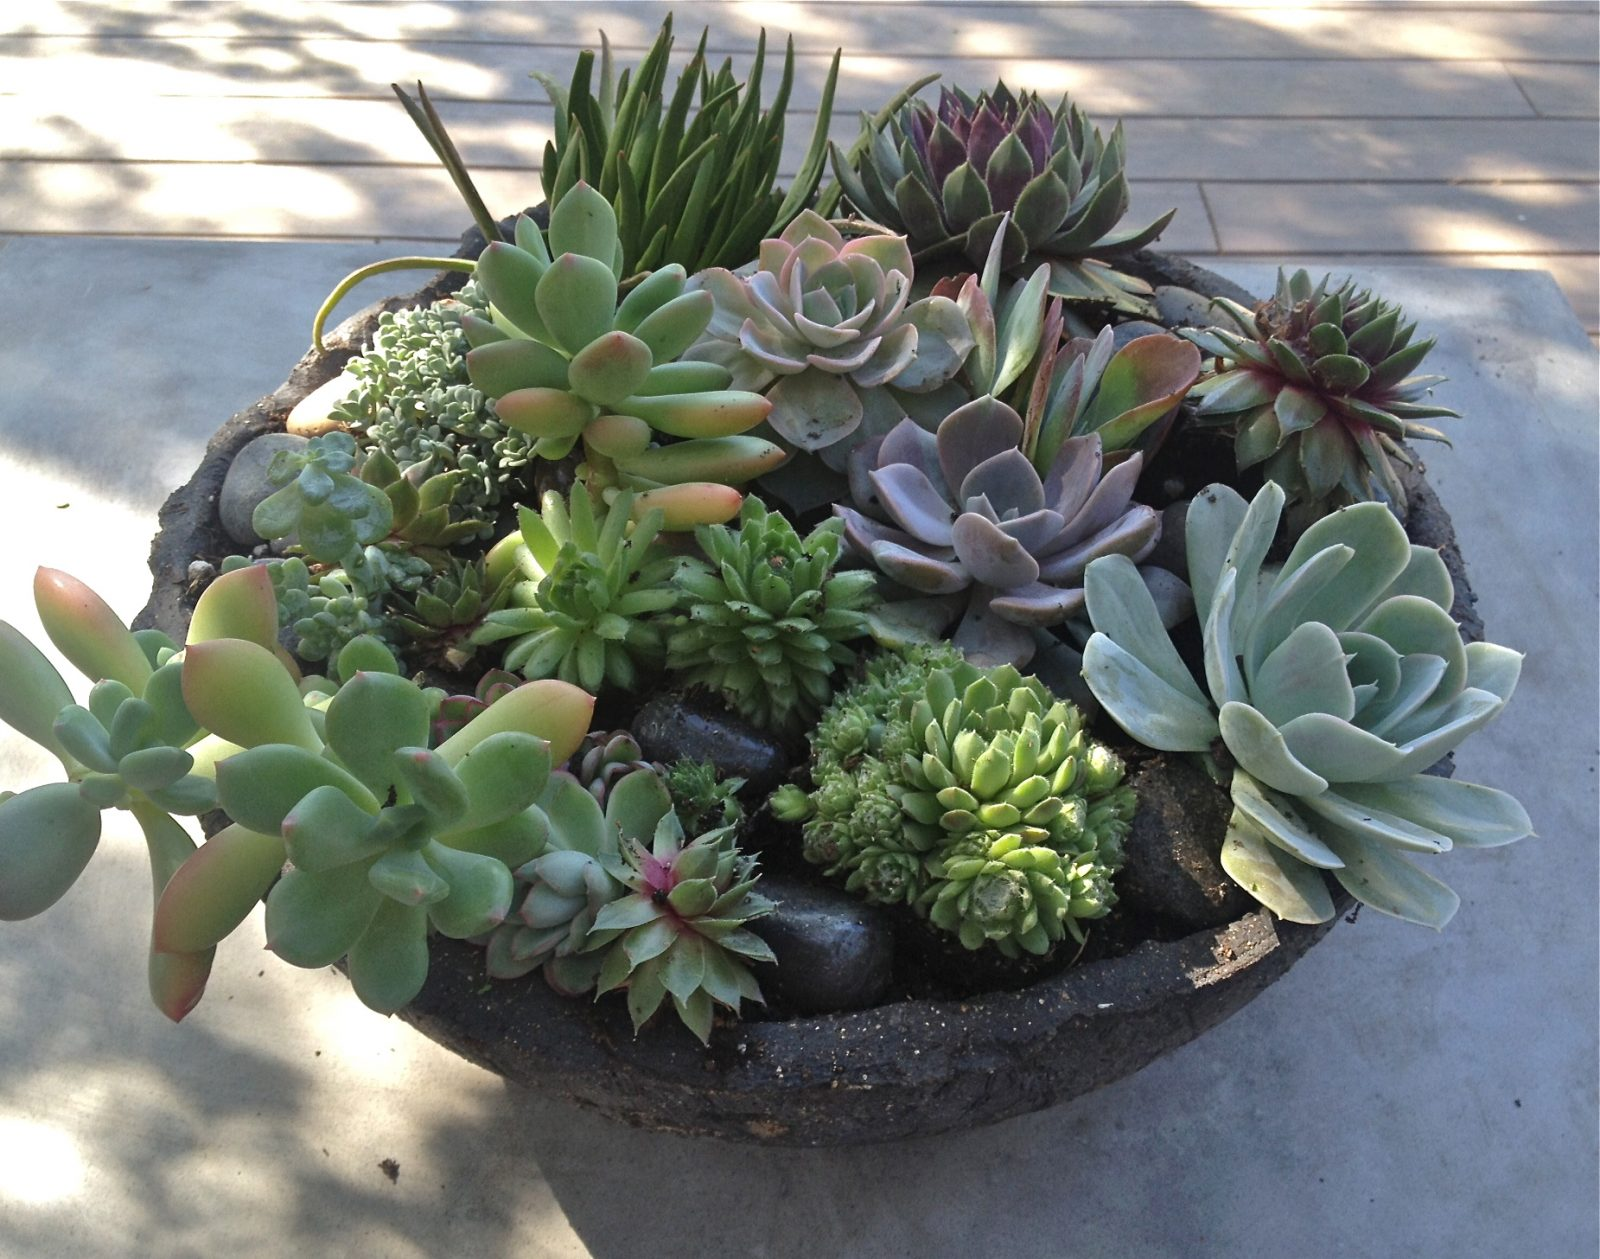 301 moved permanently for Garden arrangement of plants